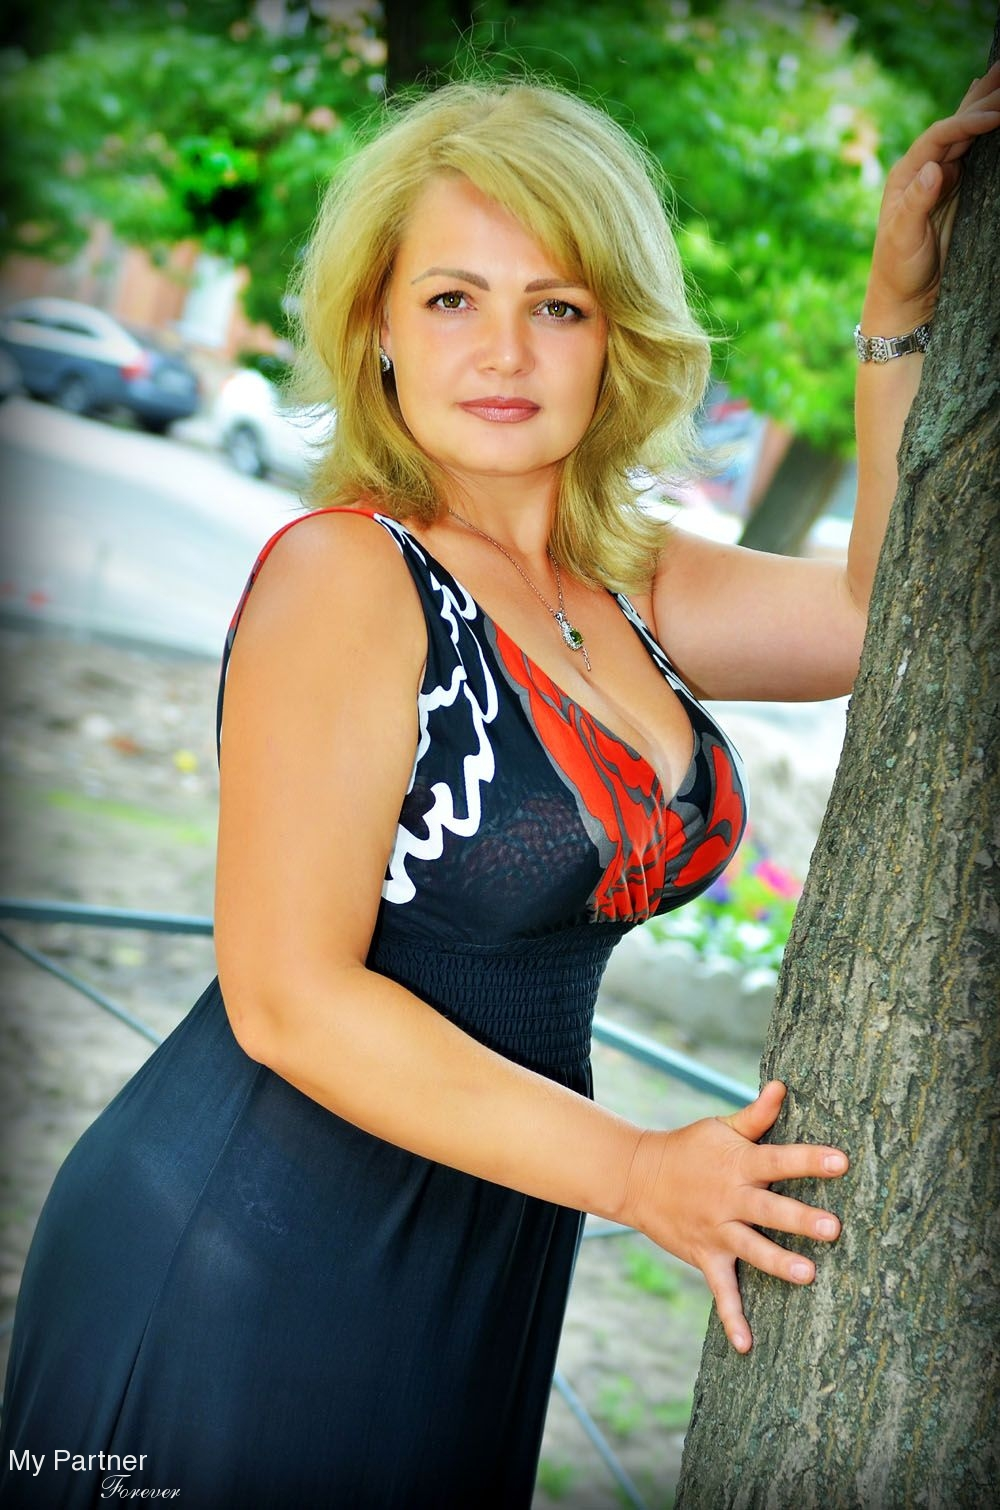 dating singles sites Mature singles trust wwwourtimecom for the best in 50 plus dating here, older singles connect for love and companionship.